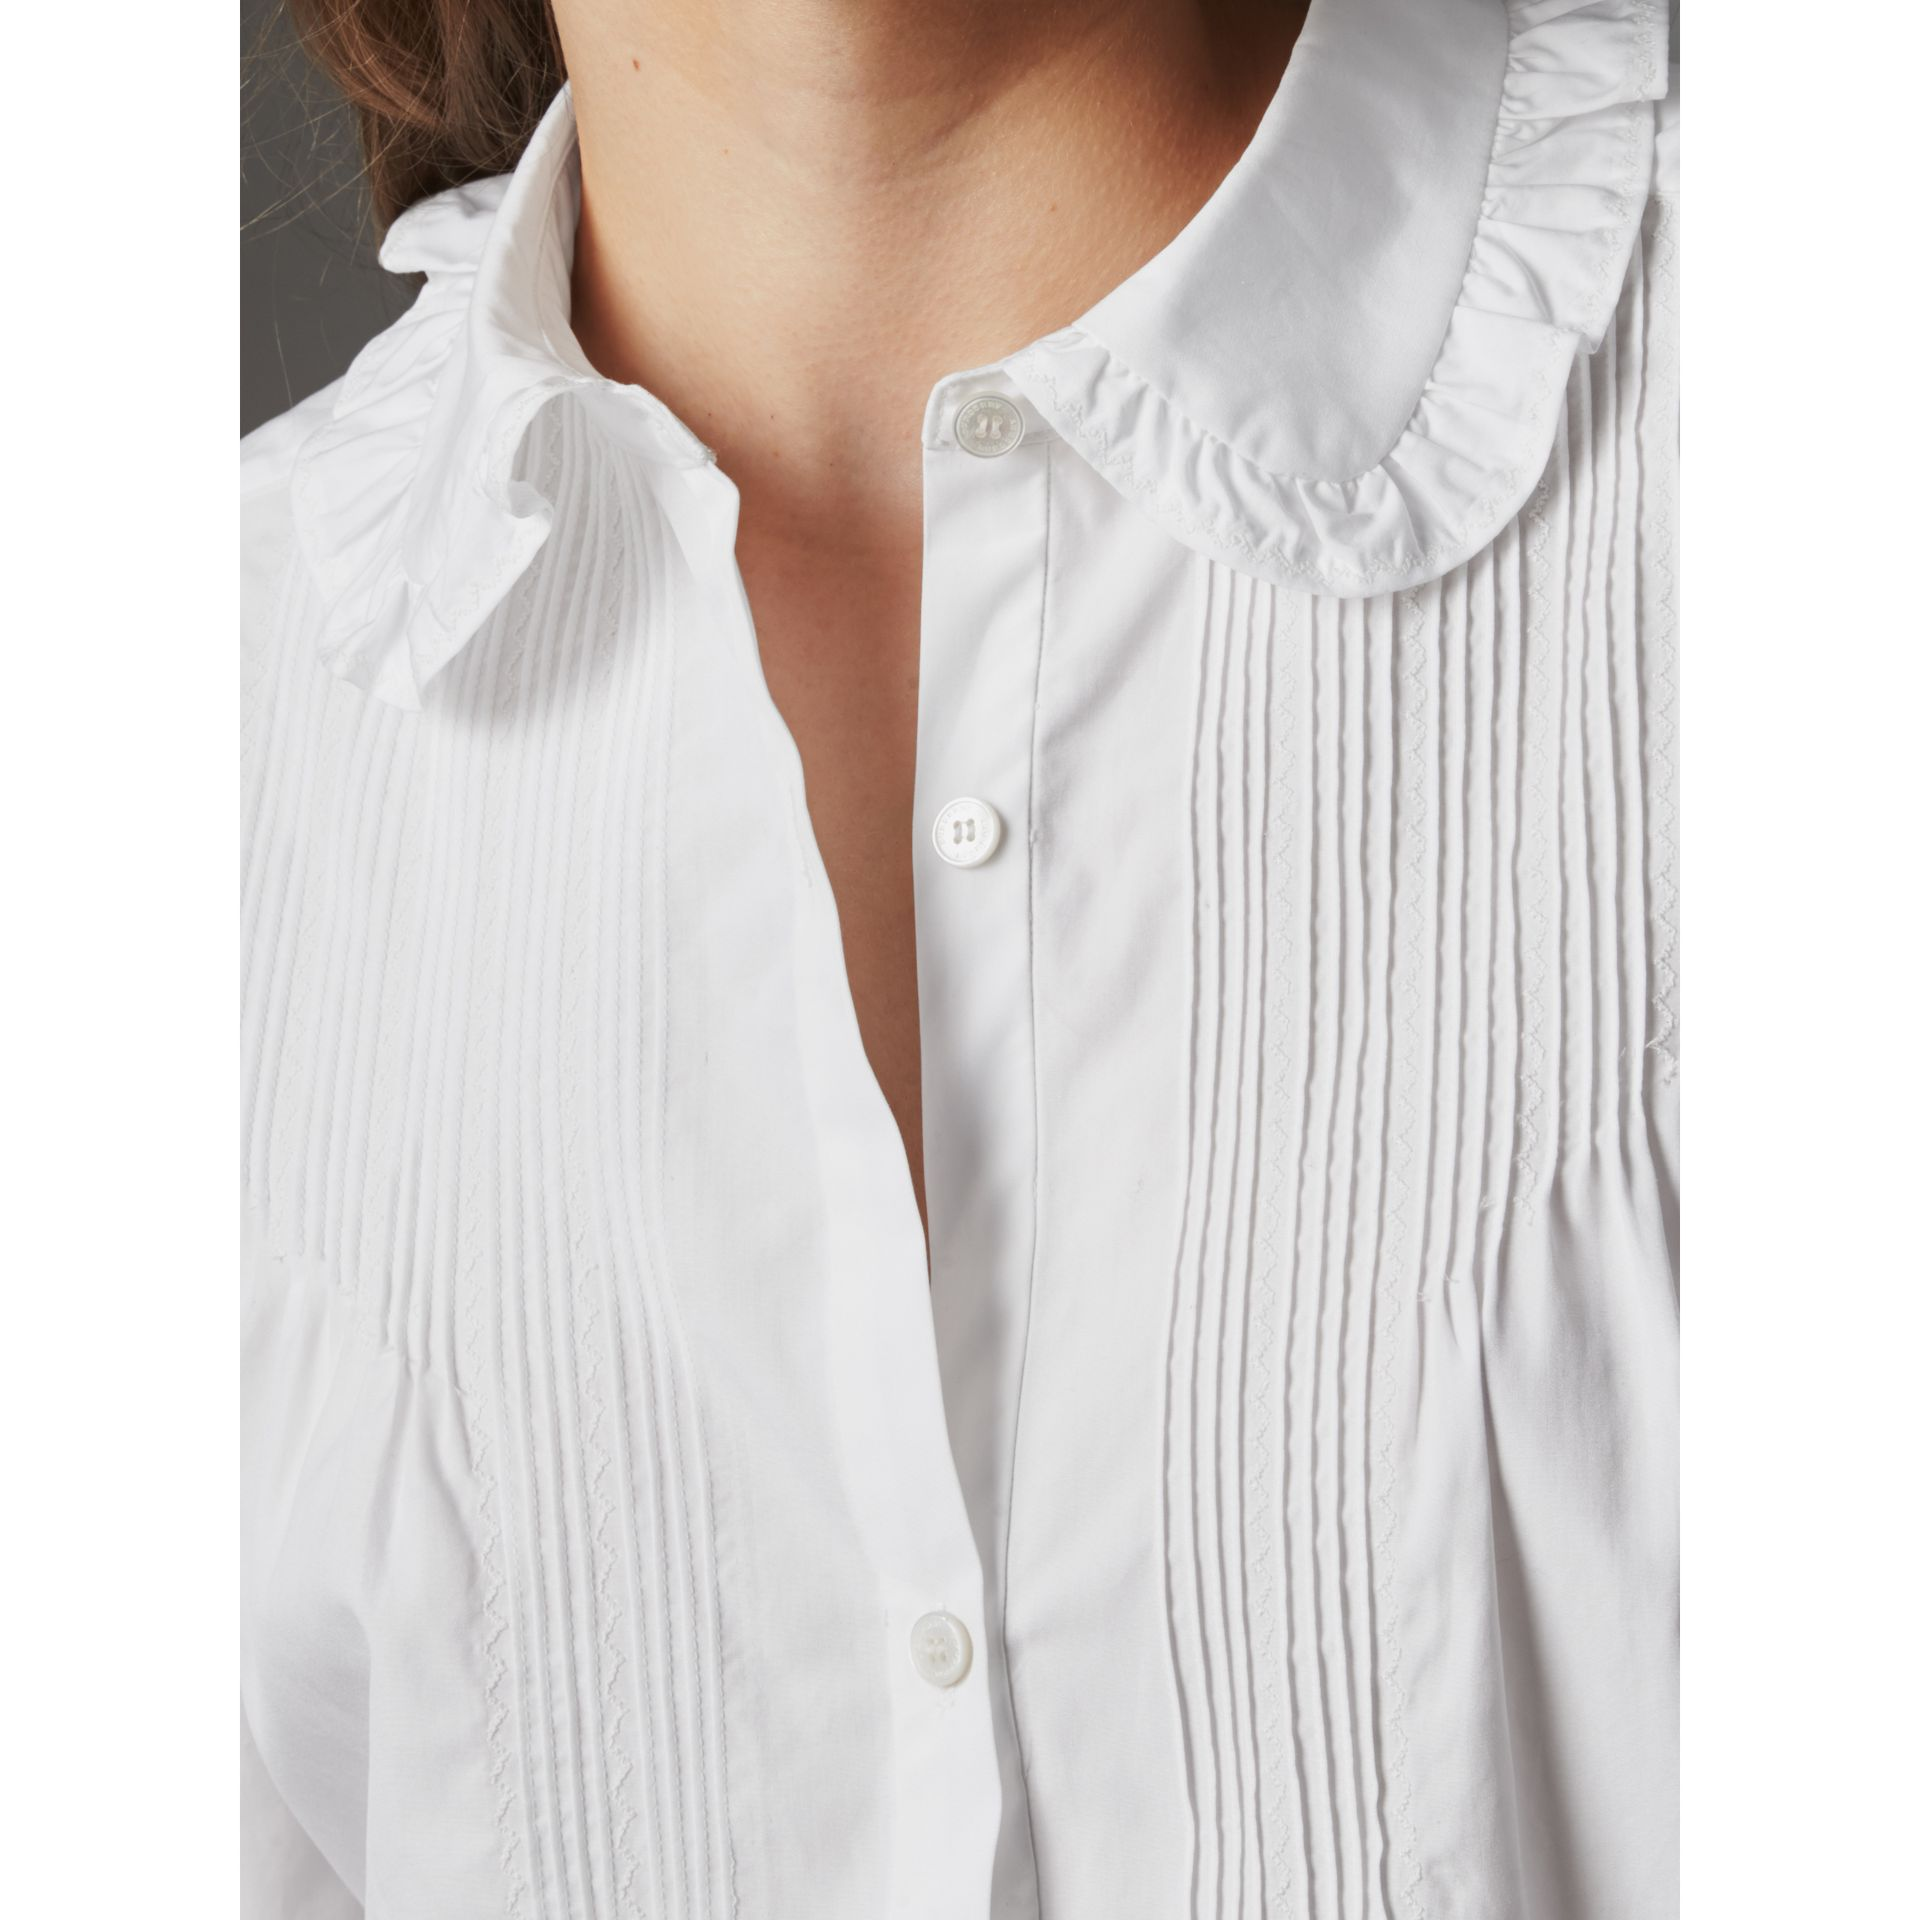 Ruffle and Pintuck Detail Cotton Shirt in White - Women | Burberry United Kingdom - gallery image 1